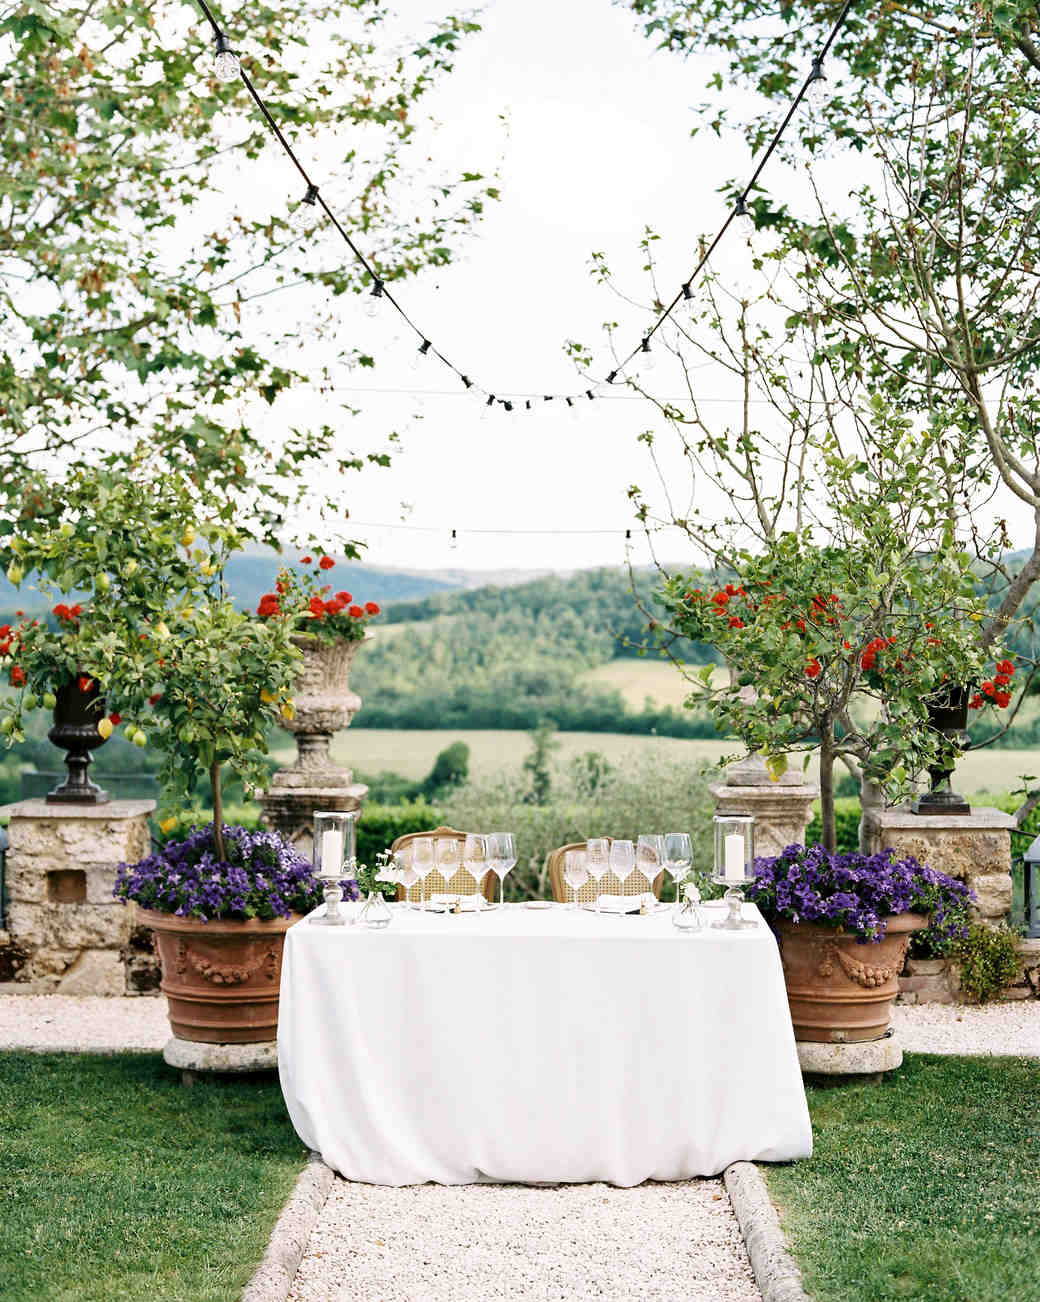 alexis zach wedding italy sweet heart table